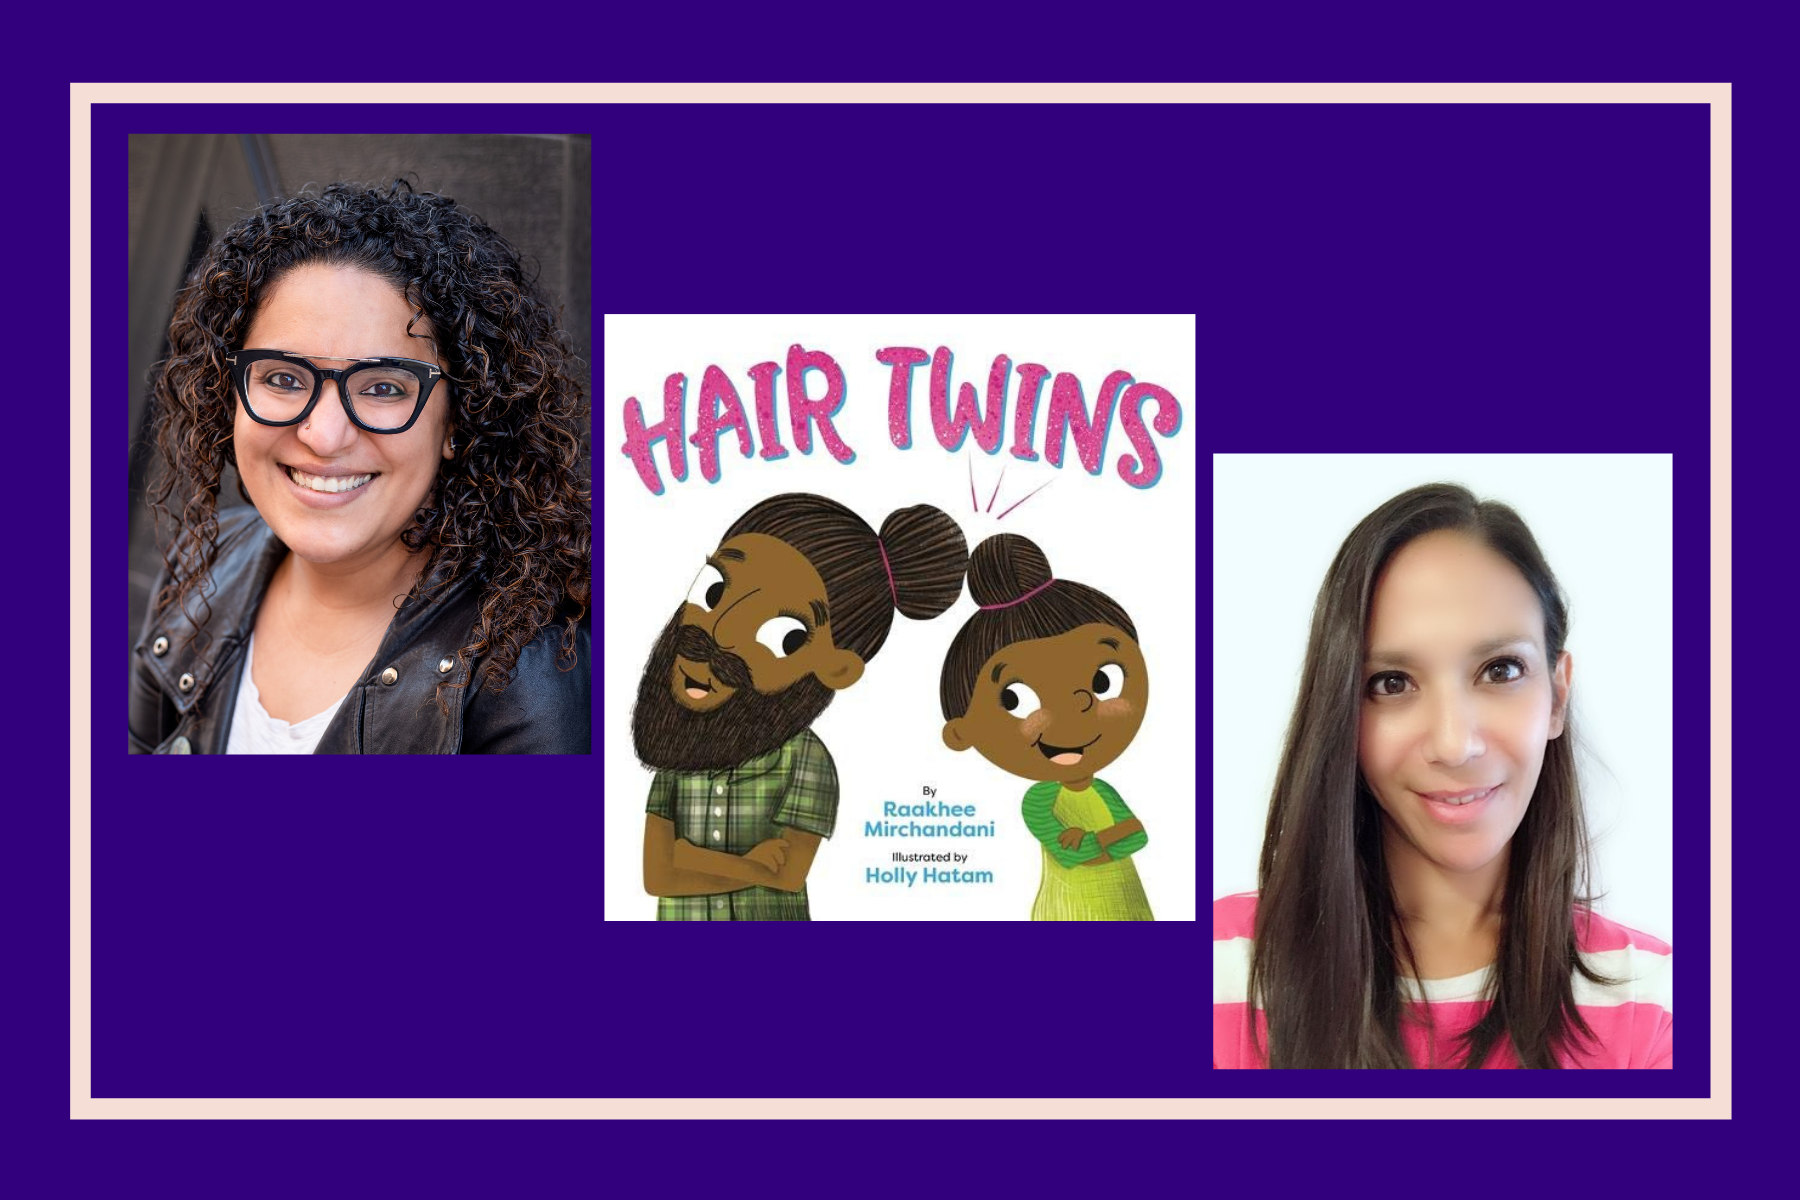 hair twins book review